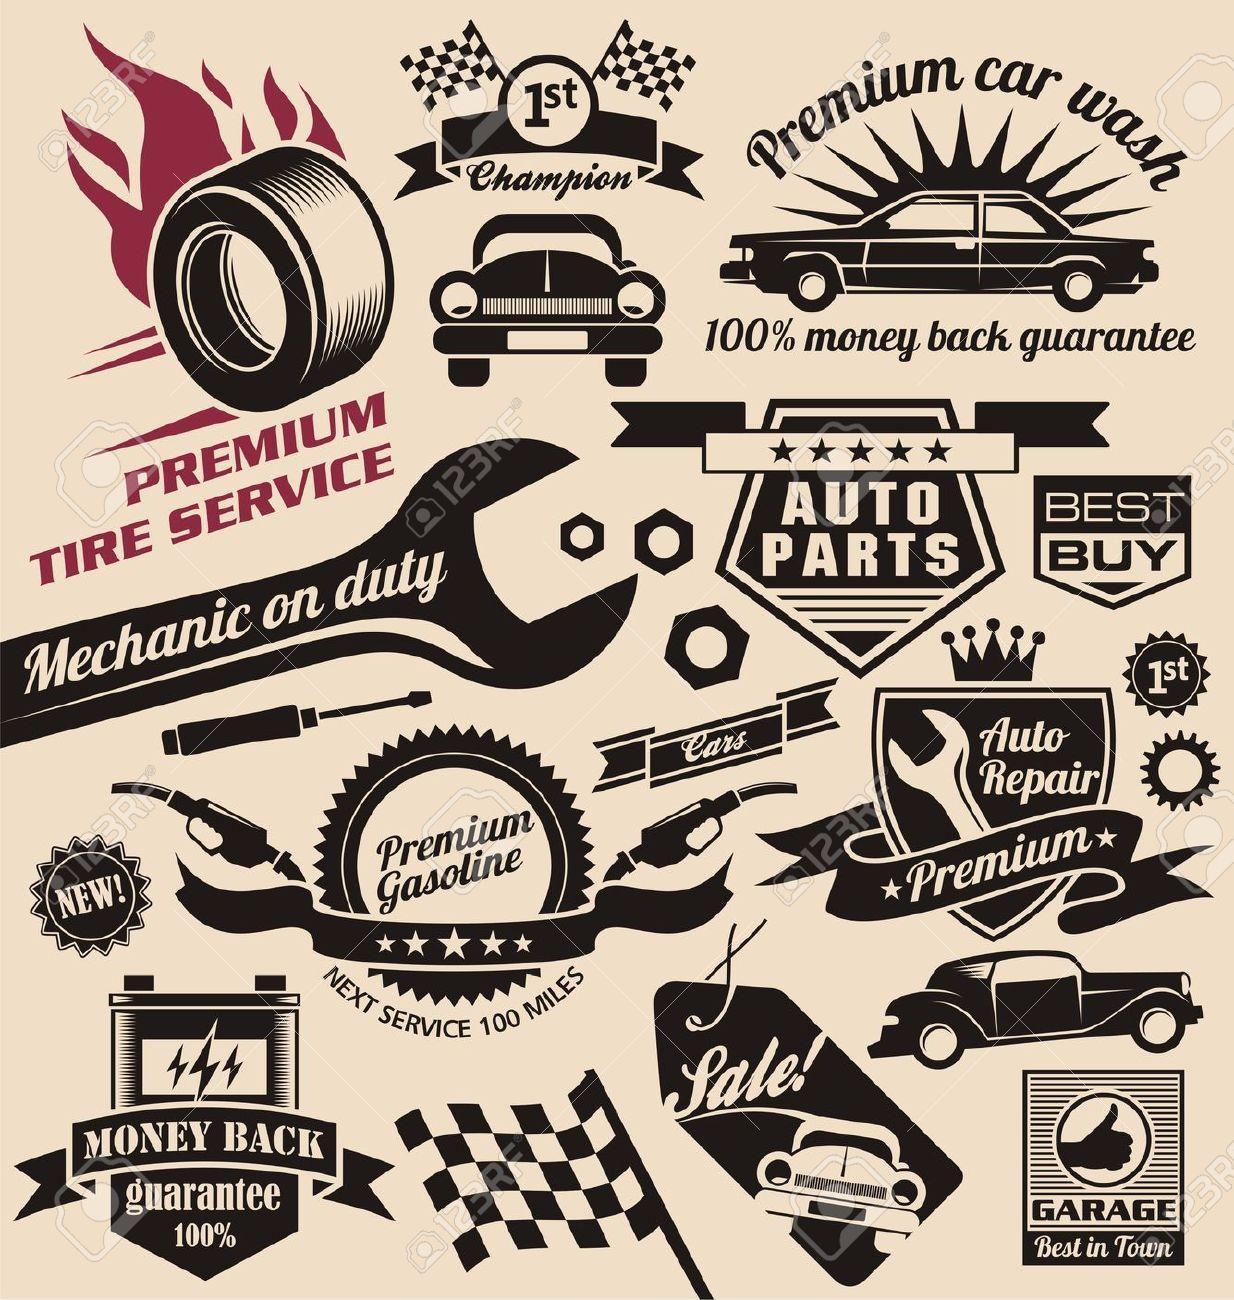 Design car emblem - Car Service And Car Sale Retro Labels And Icons Vintage Collection Of Car Related Signs And Symbols With Various Design Elements Ribbons And Emblems